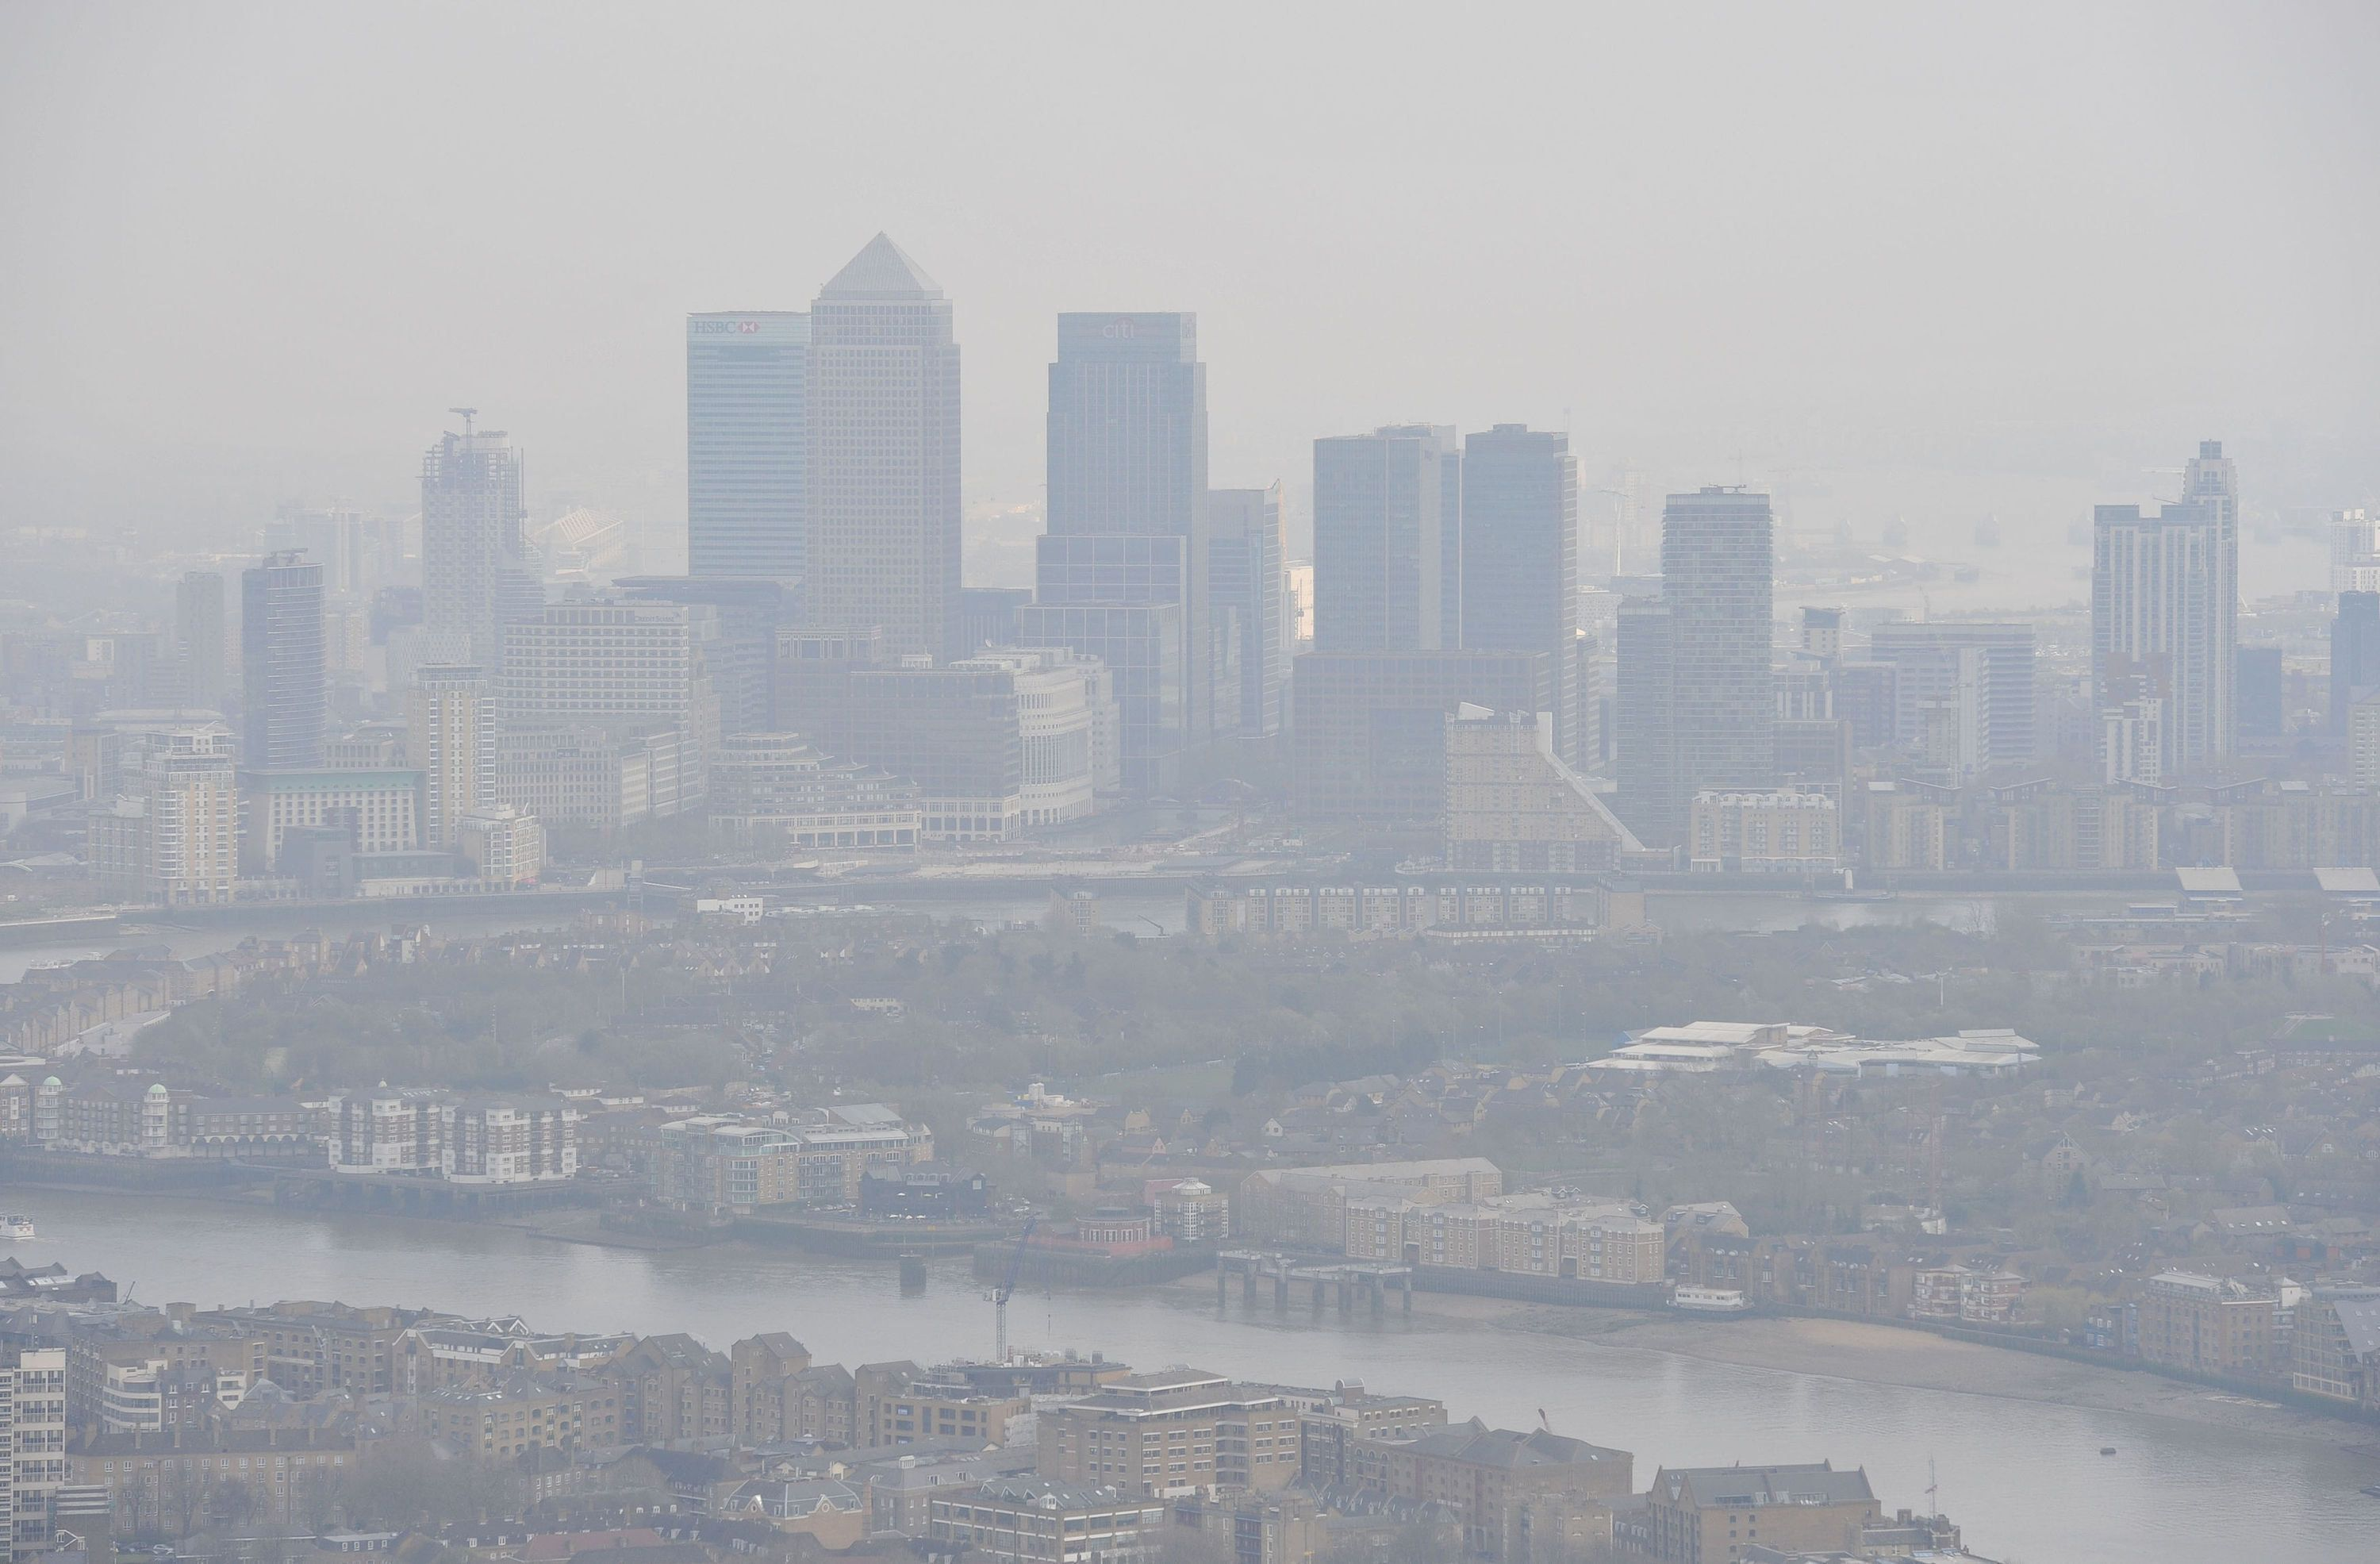 Britain pledges legislation in 2019 to combat deadly air pollution